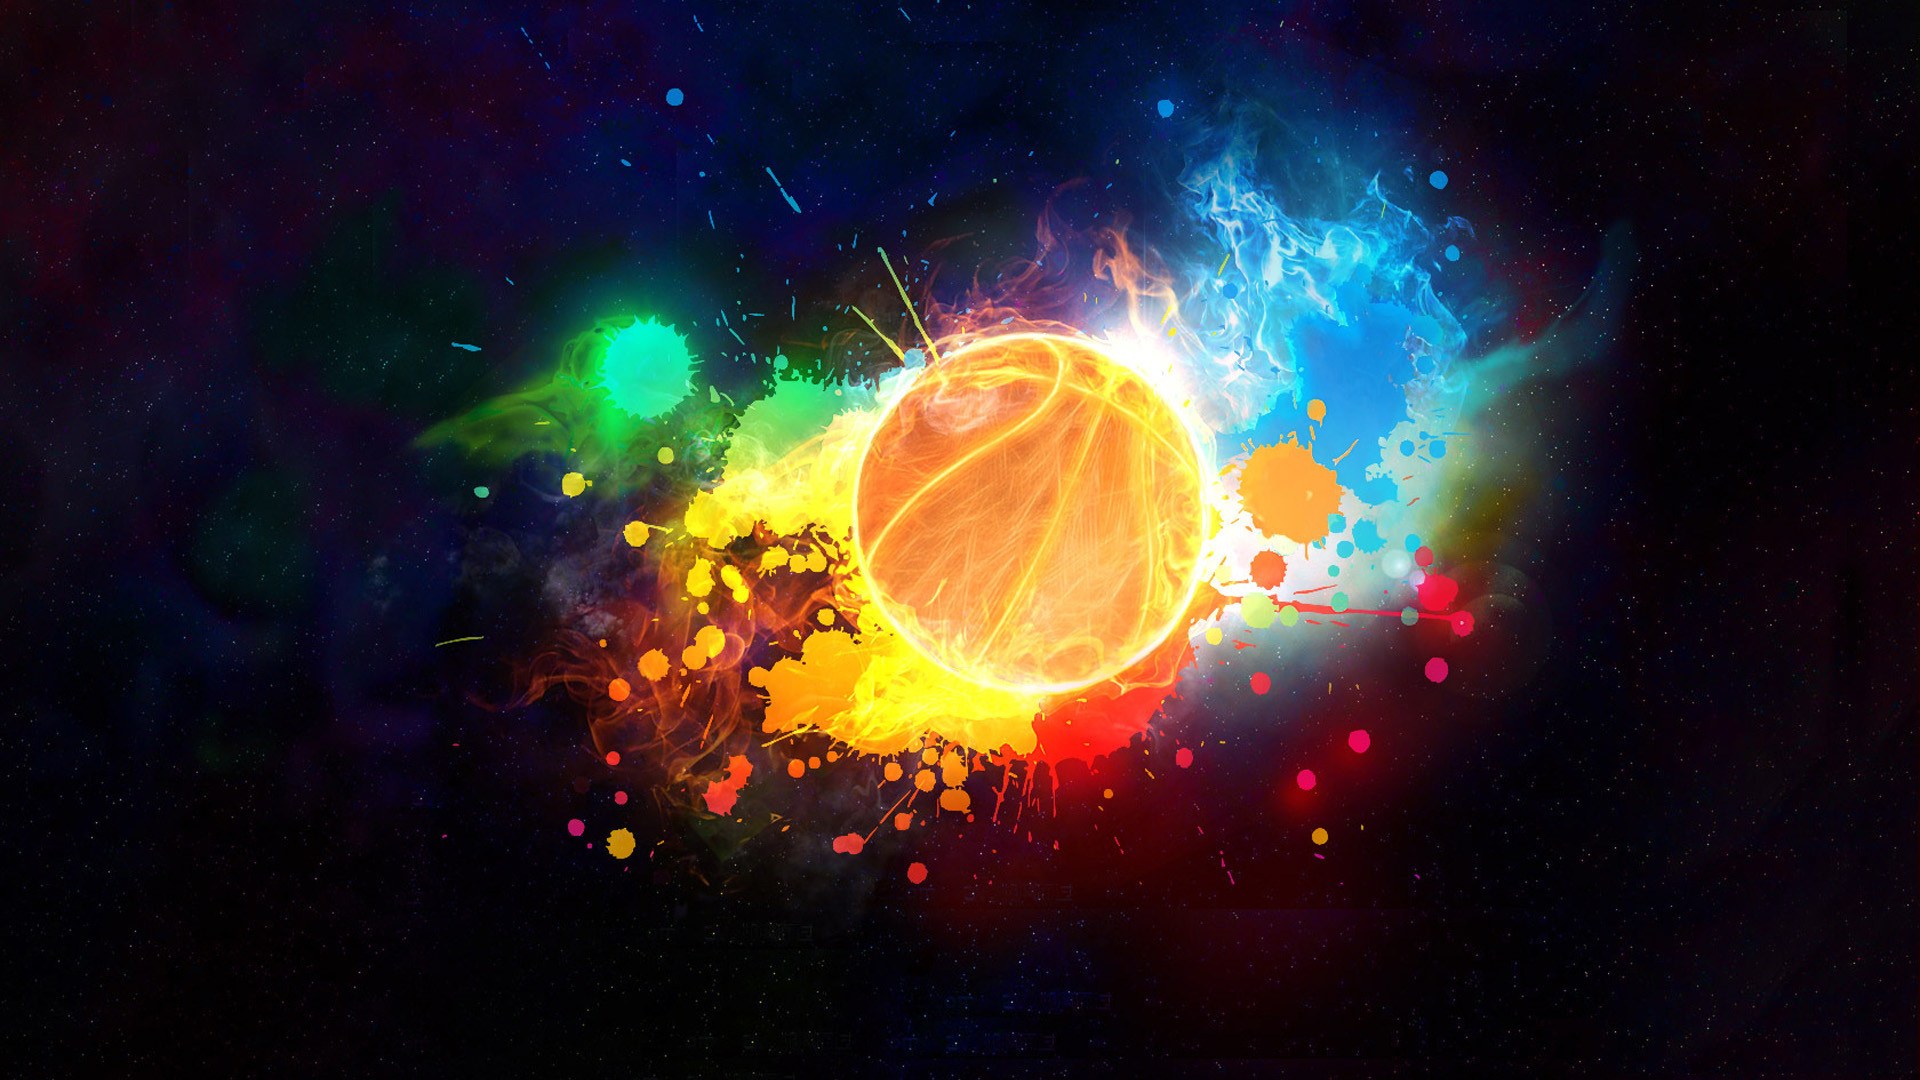 HD Basketball Wallpaper ·①